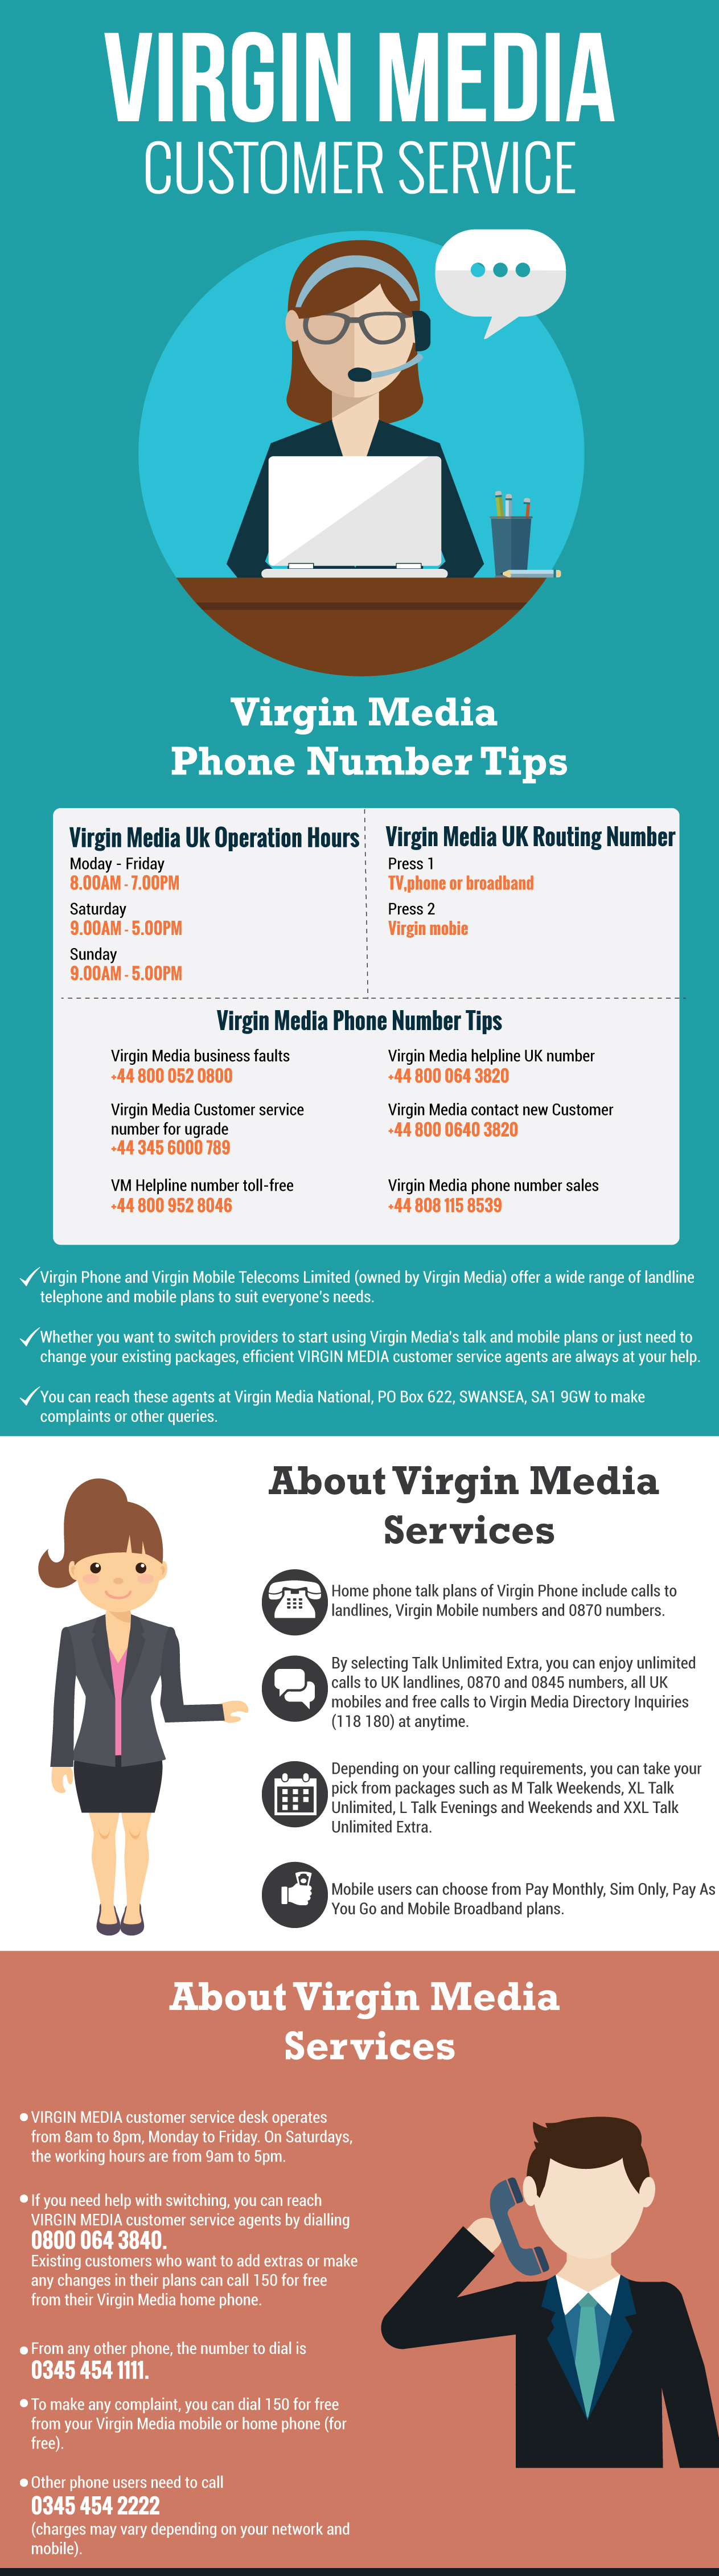 Virgin Media Helpline